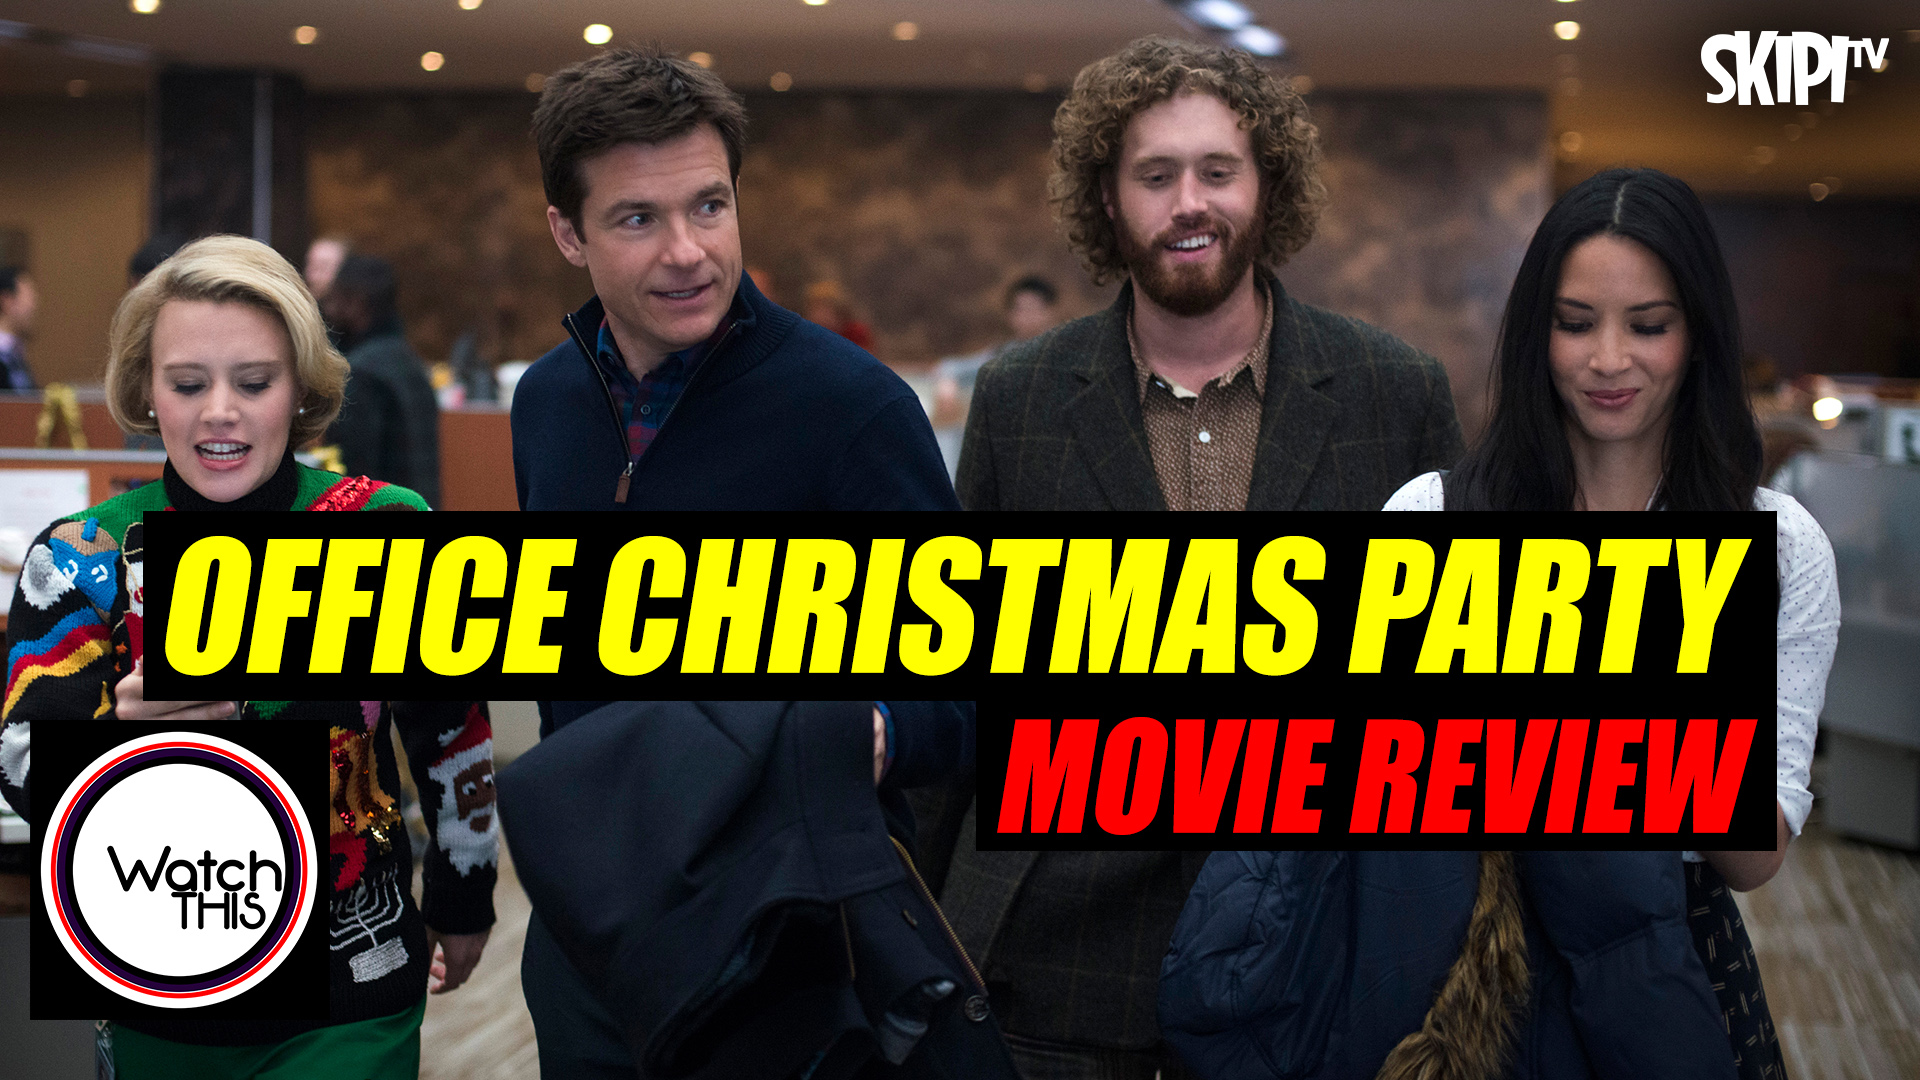 Office Christmas Party\' Review | SKIPI.TV